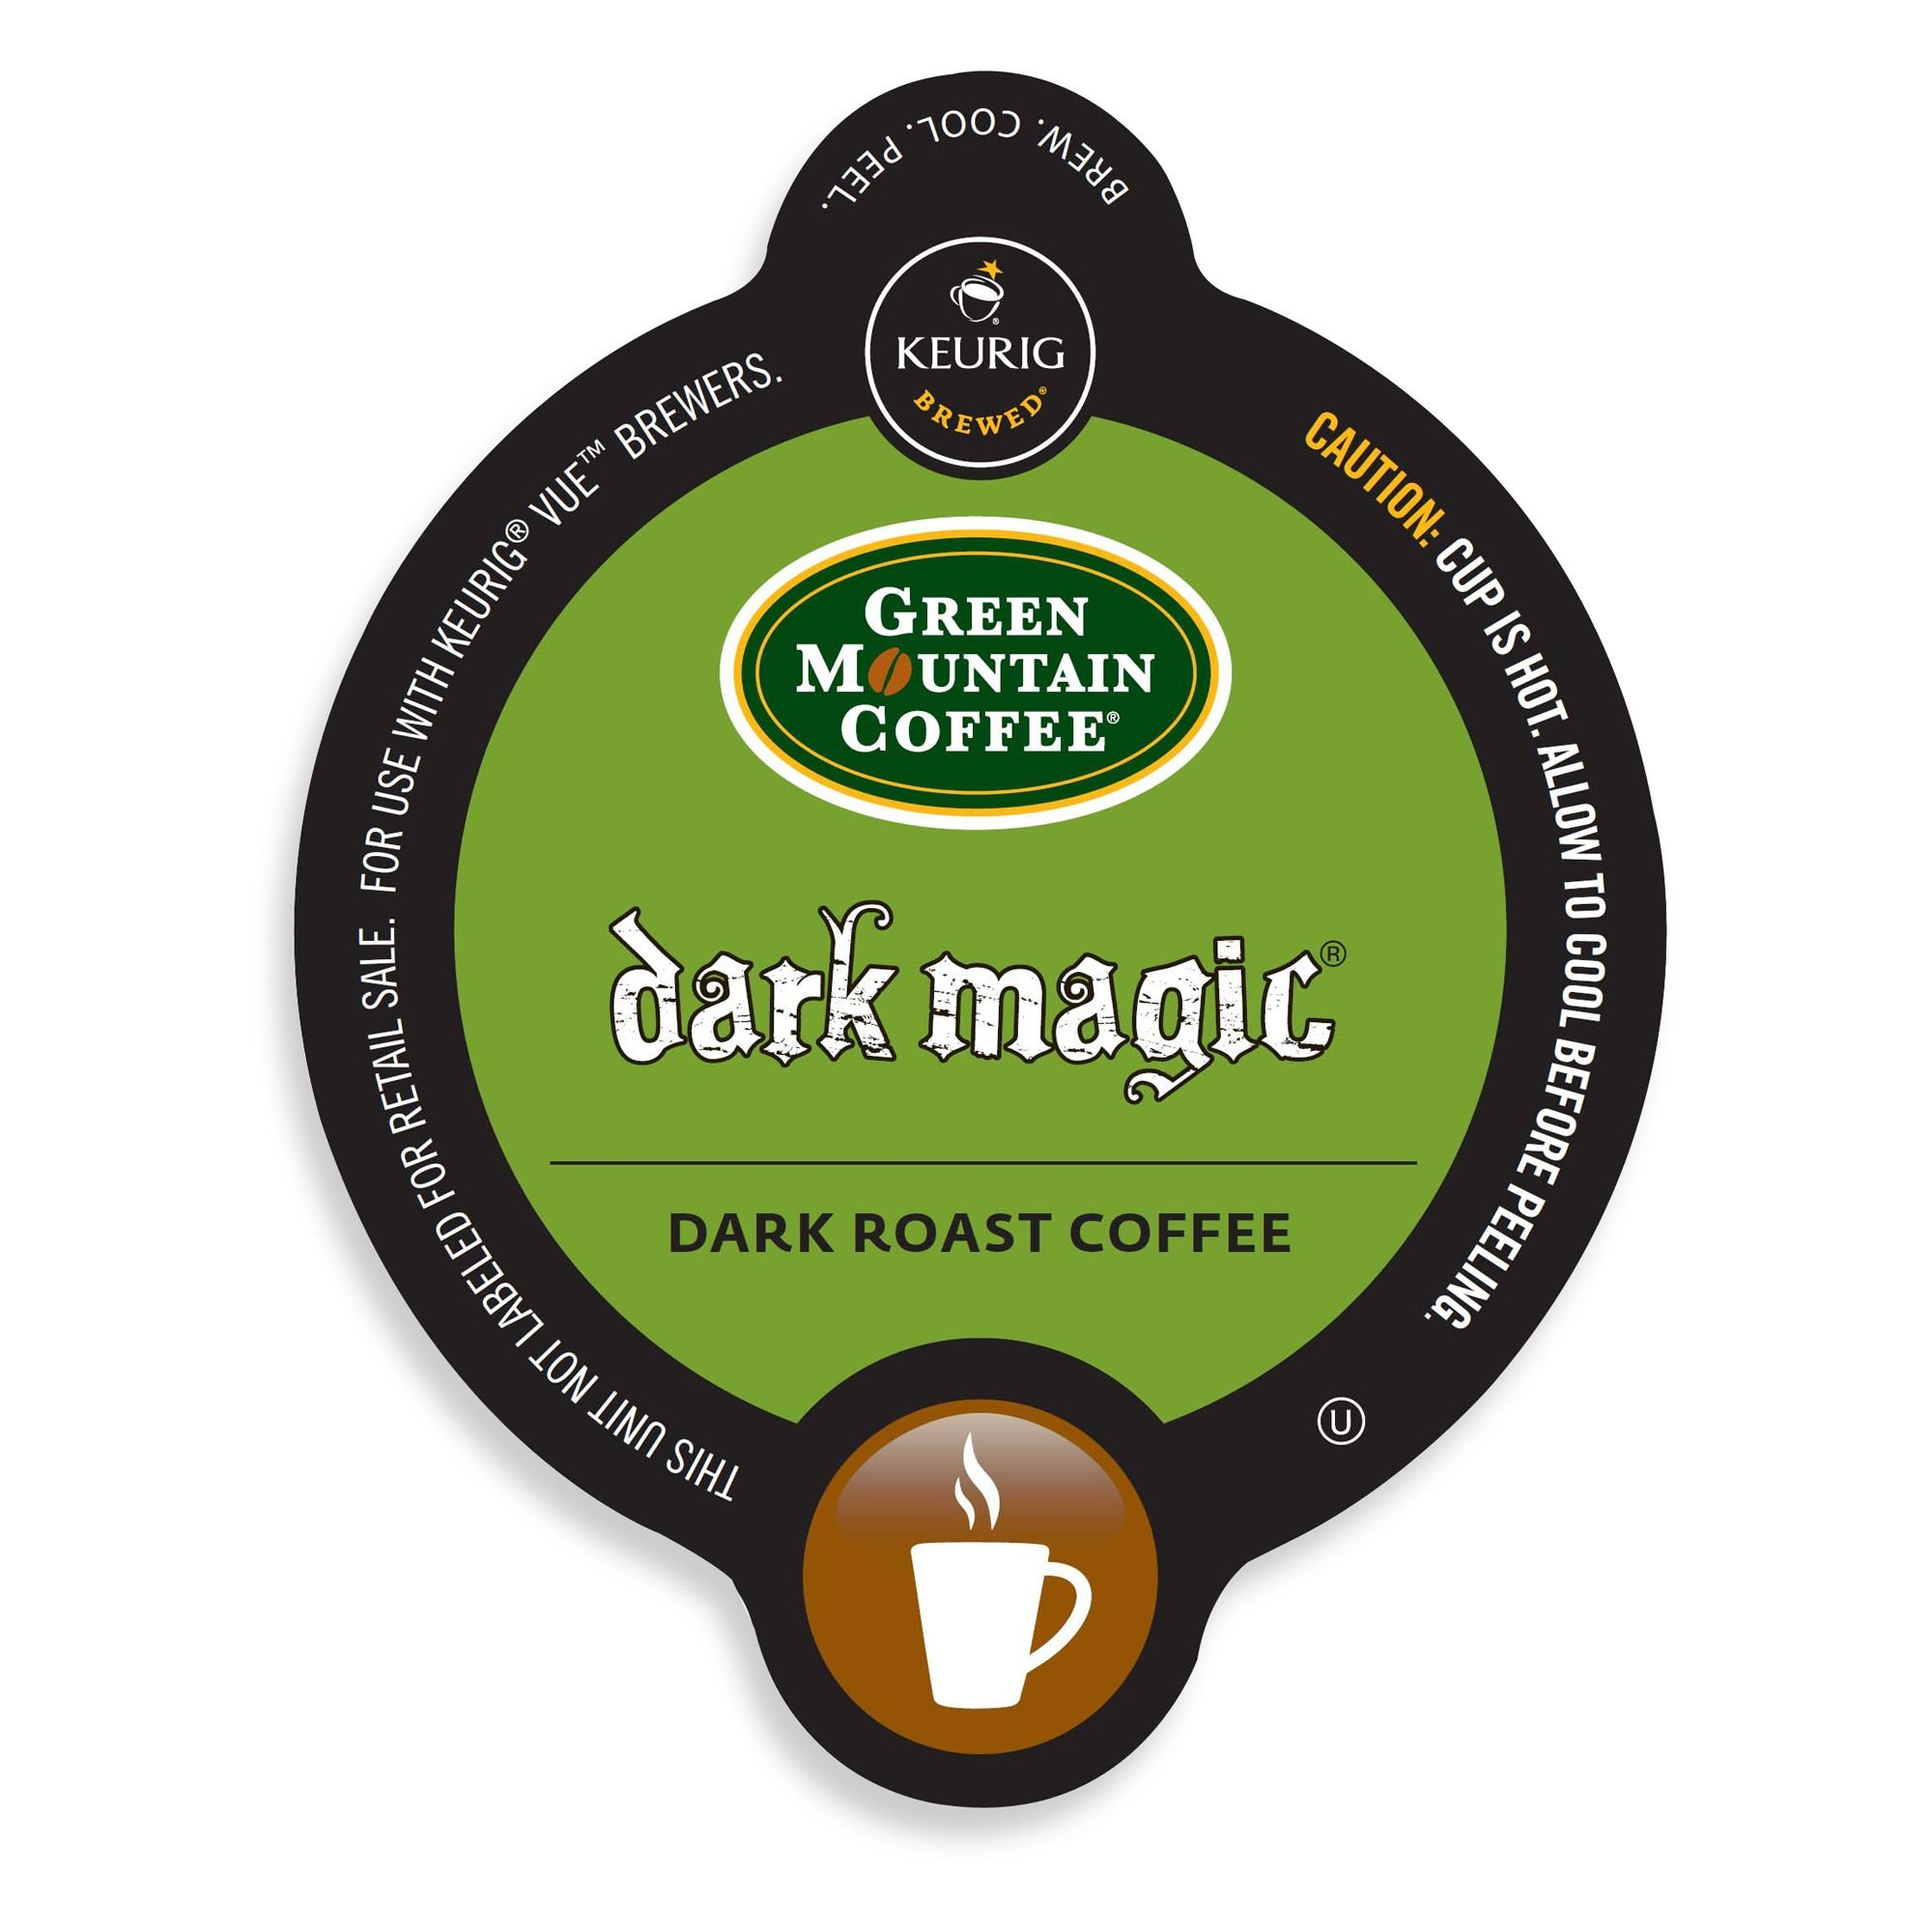 Green Mountain Coffee Dark Magic, Vue Cups for Keurig Vue Brewers (96 Count) by Green Mountain Coffee